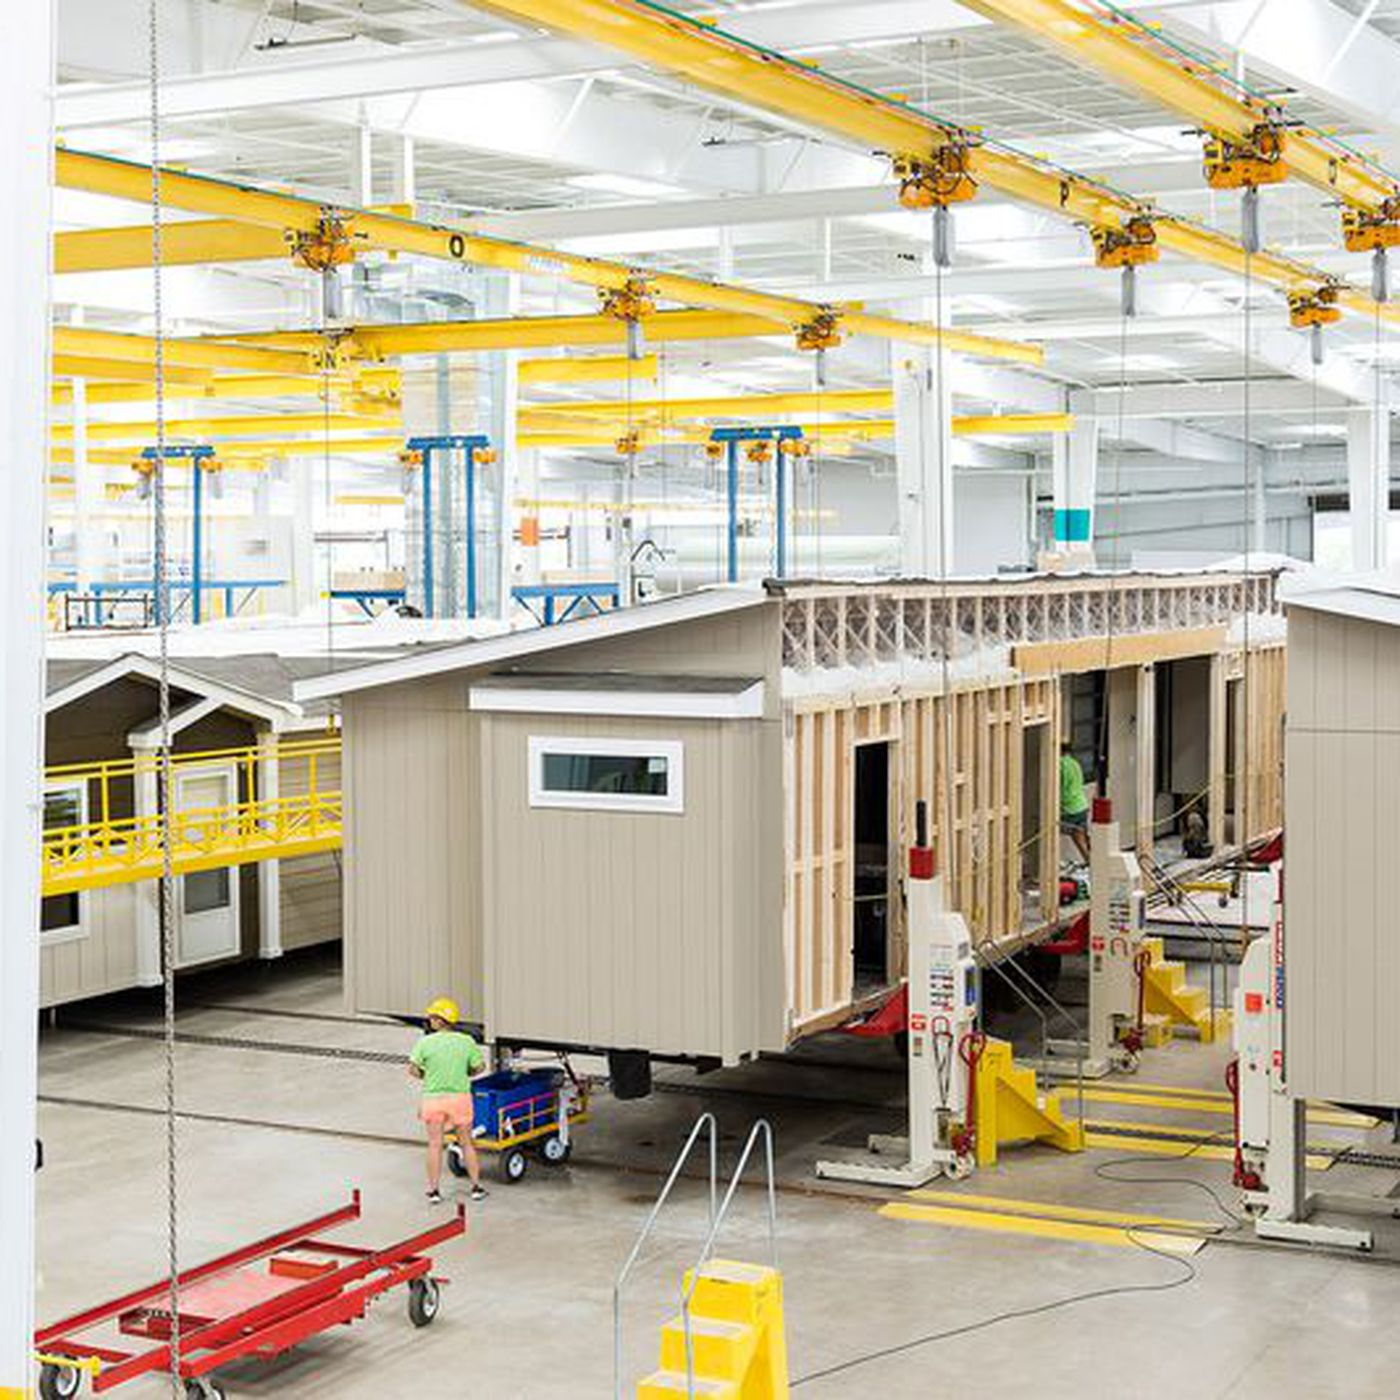 Mobile homes 101: Who's living in them and how they're made